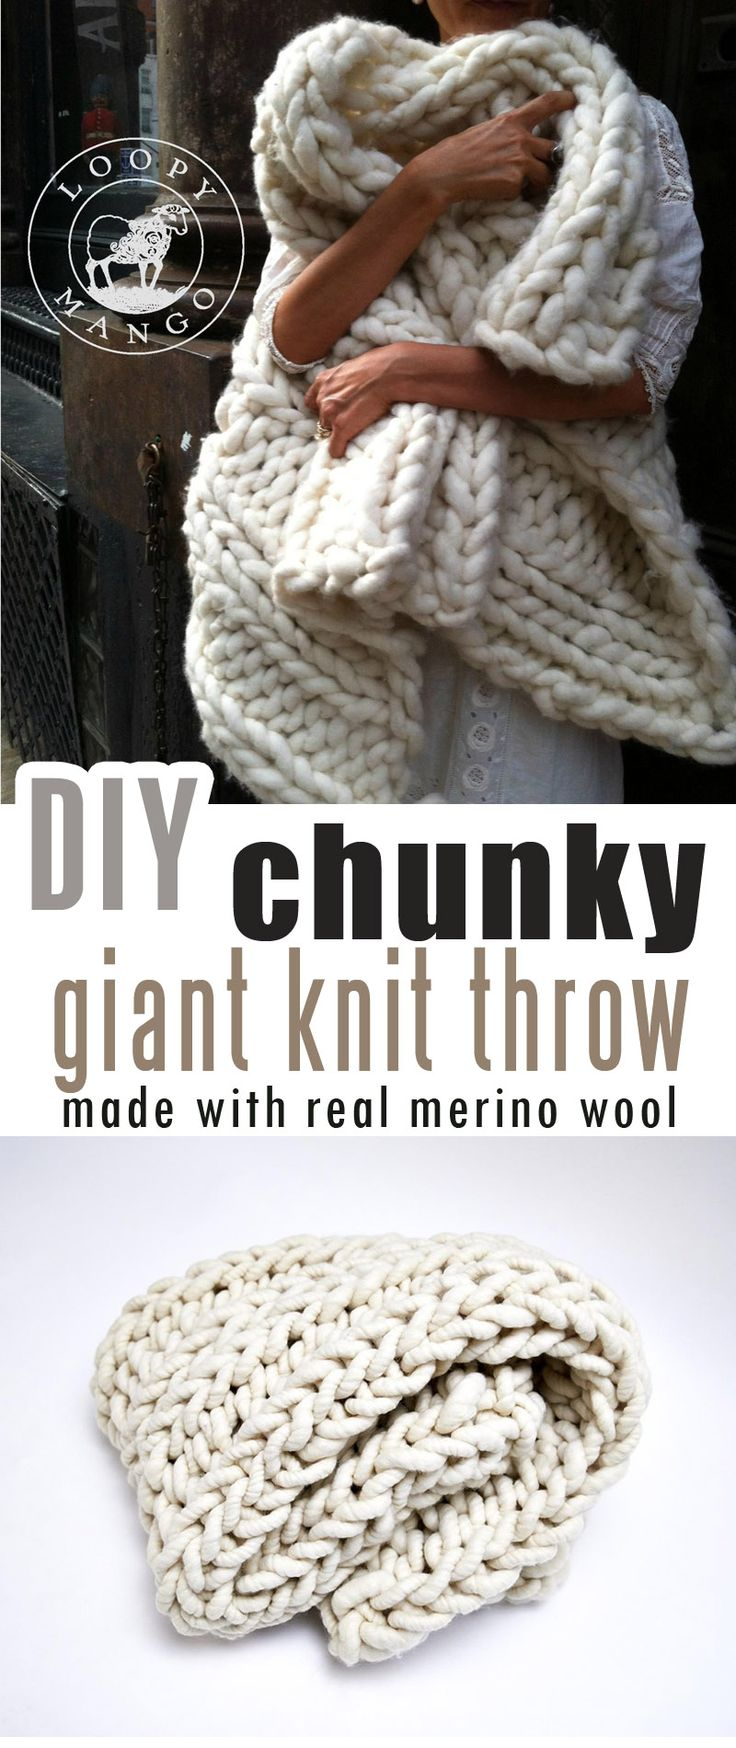 Are you interested in learning how to arm-knit blanket that is so super-chunky a…